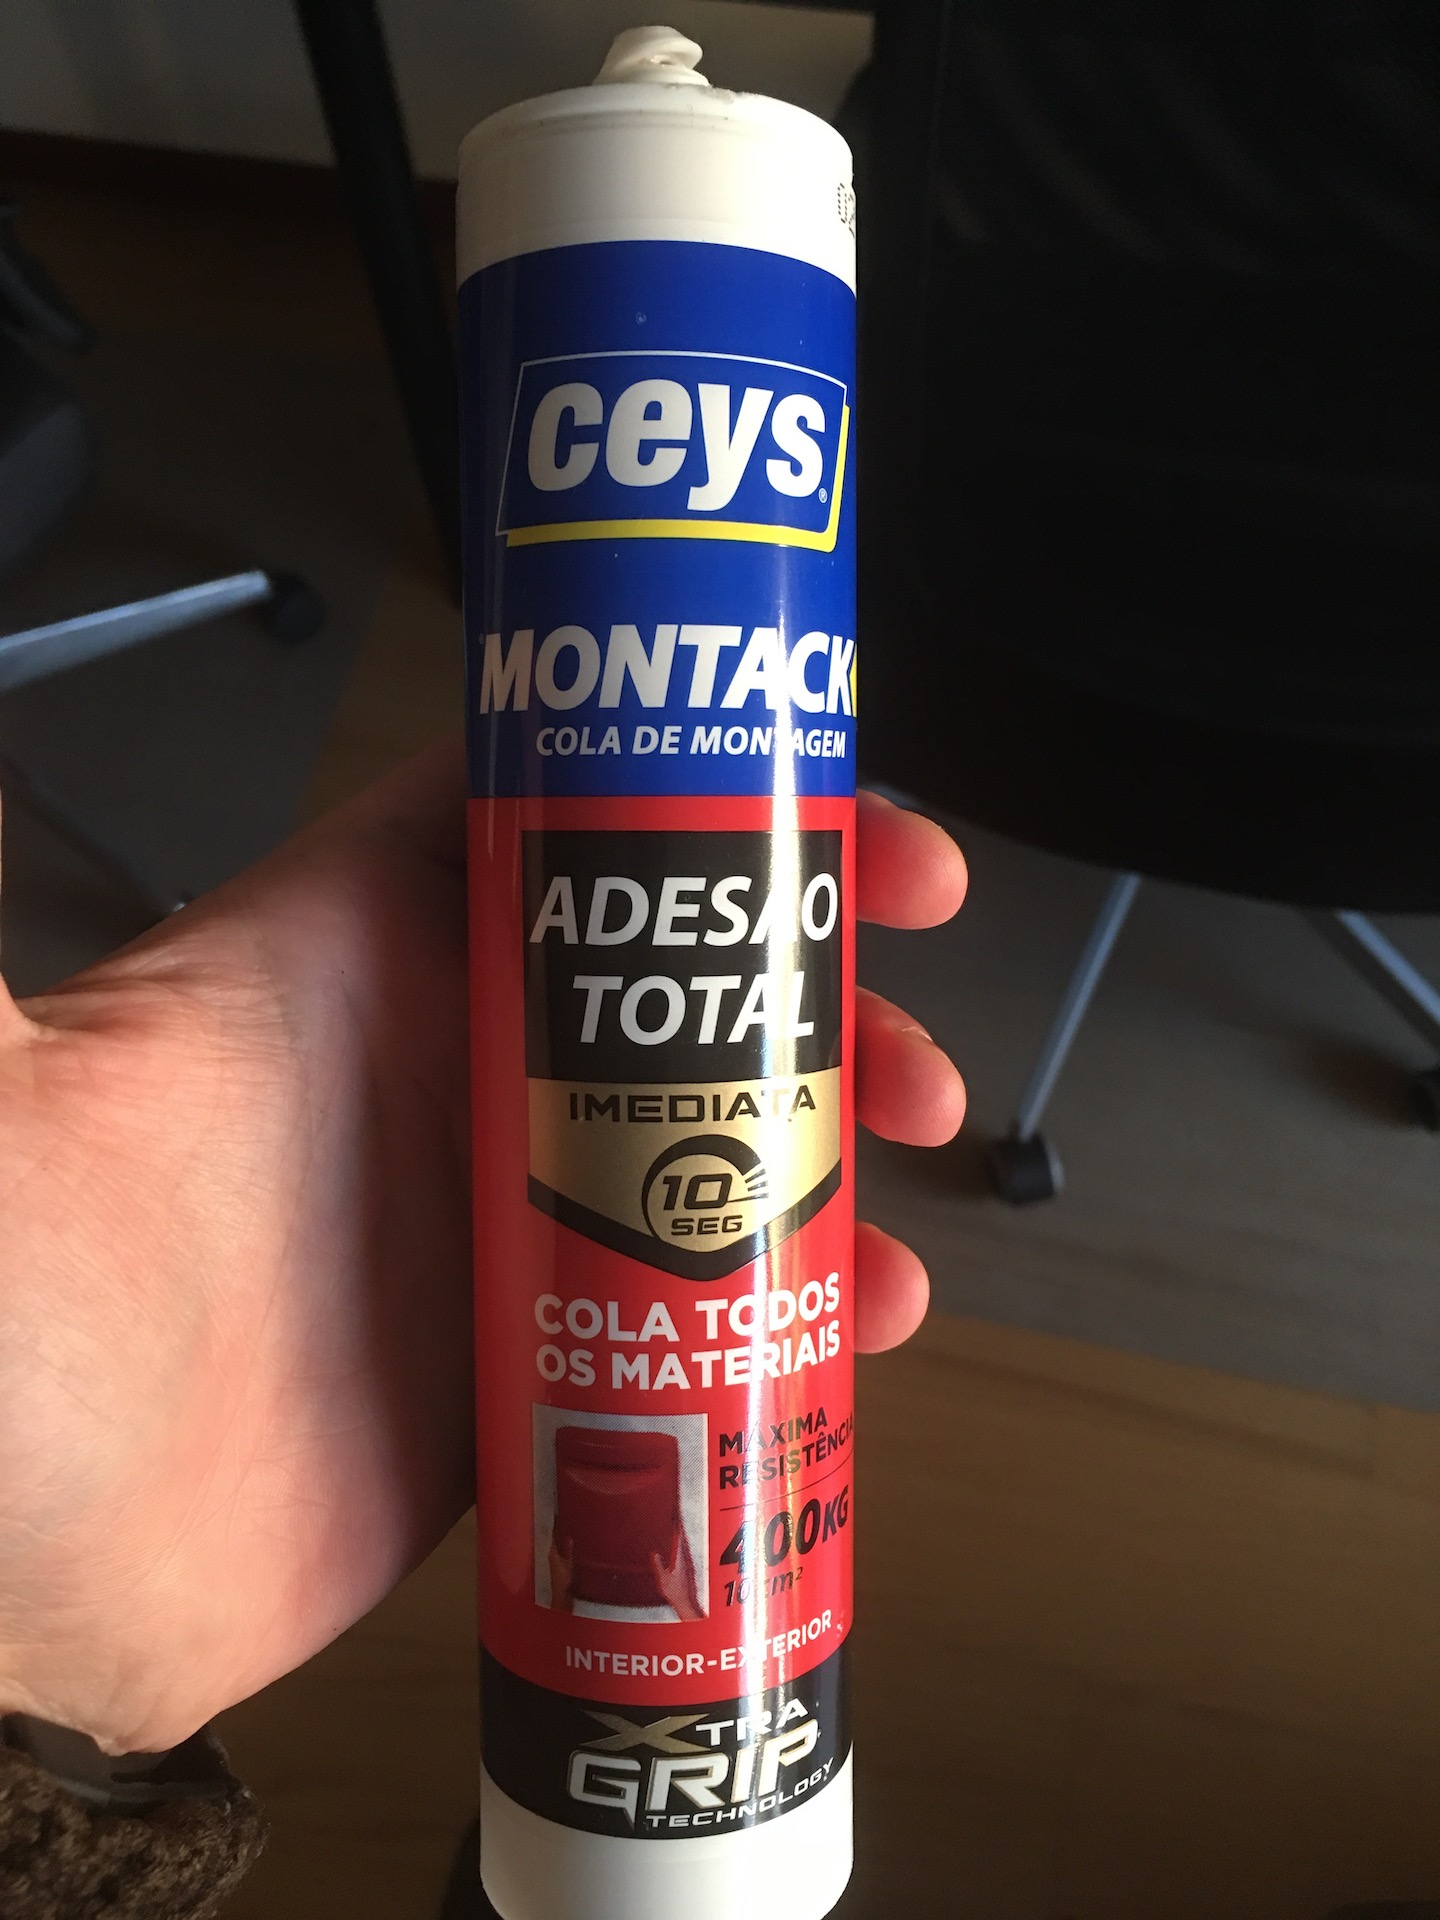 Brand of the adhesive